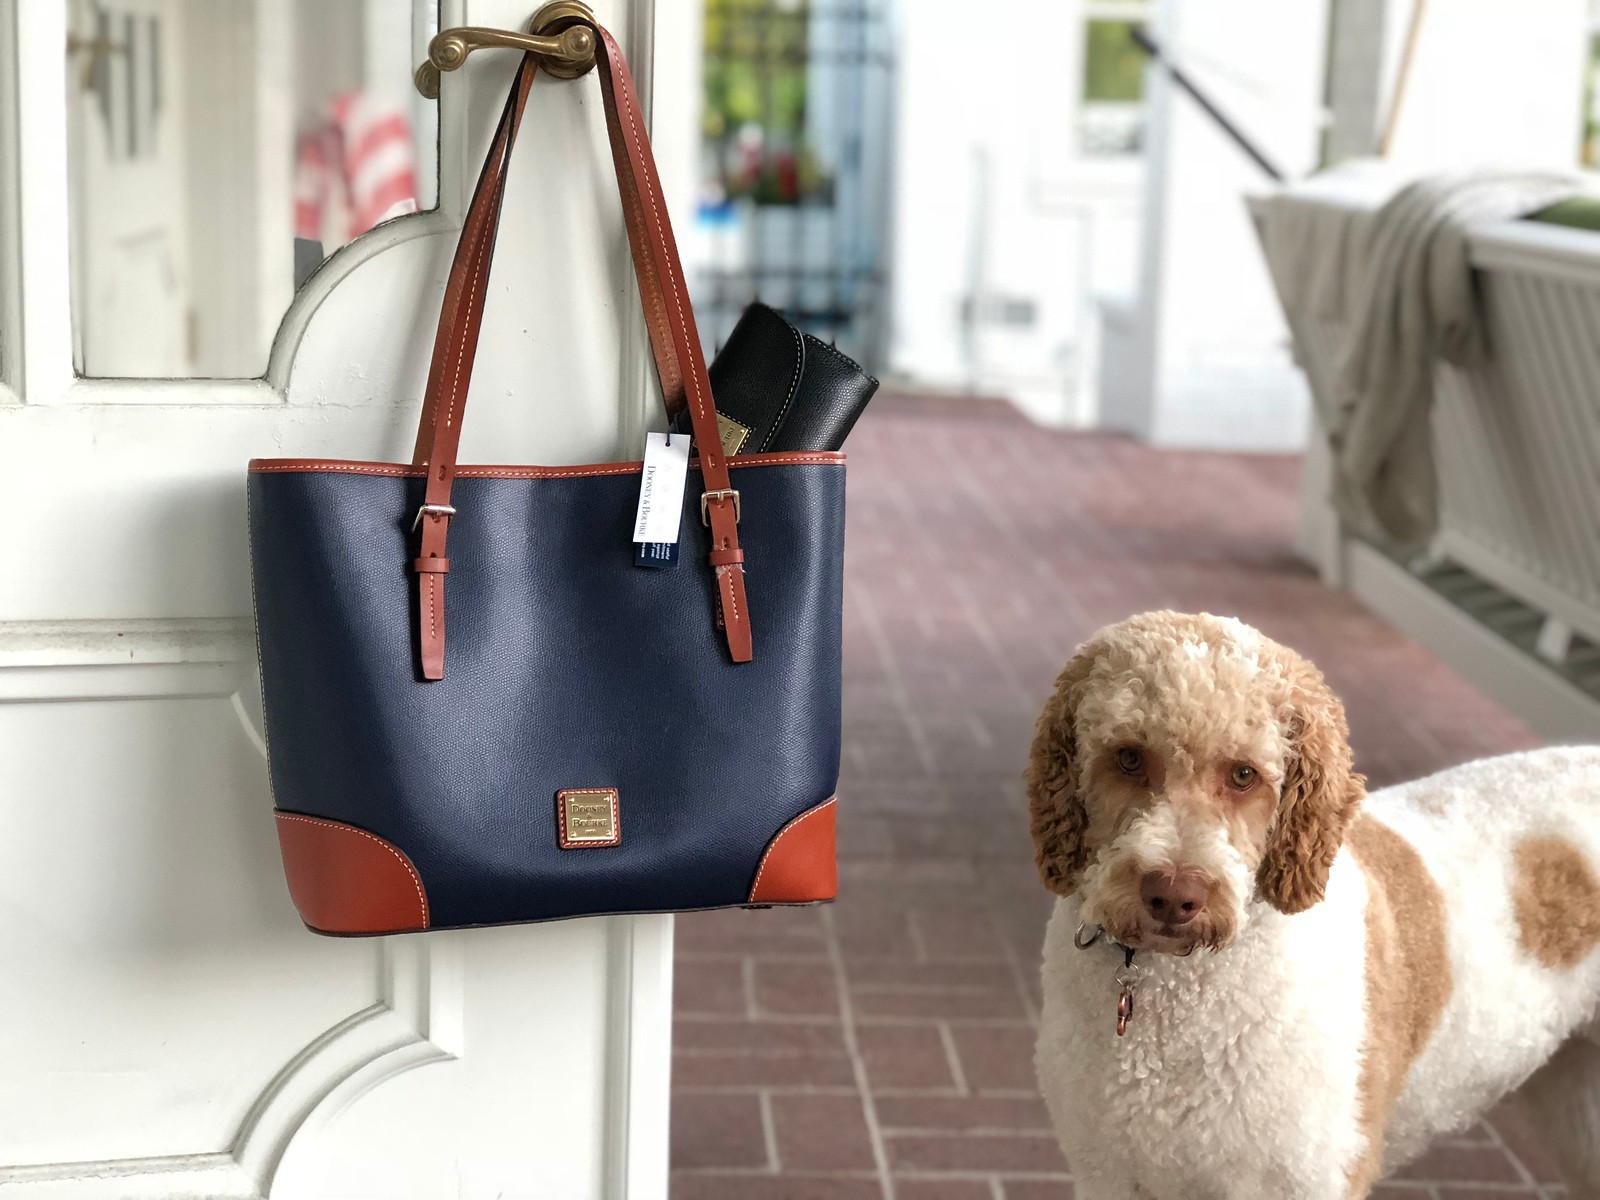 Giveaway Dooney & Bourke tote and clutch – clutch and bag hanging from a doorknob